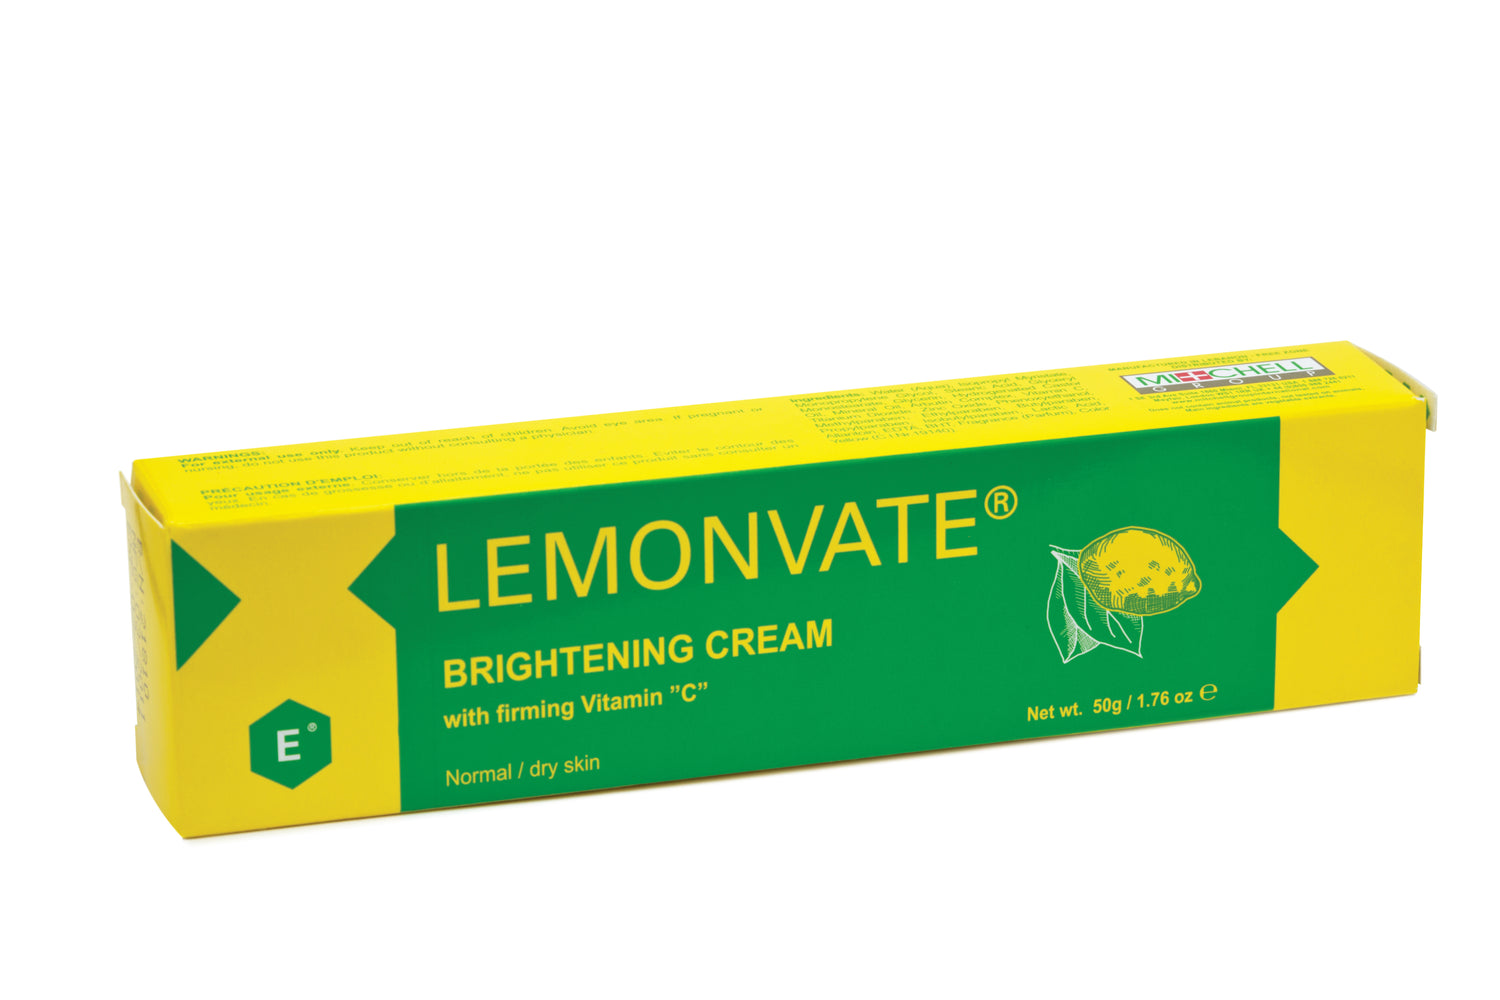 Lemonvate Brightening Cream 50g Mitchell Brands - Mitchell Brands - Skin Lightening, Skin Brightening, Fade Dark Spots, Shea Butter, Hair Growth Products